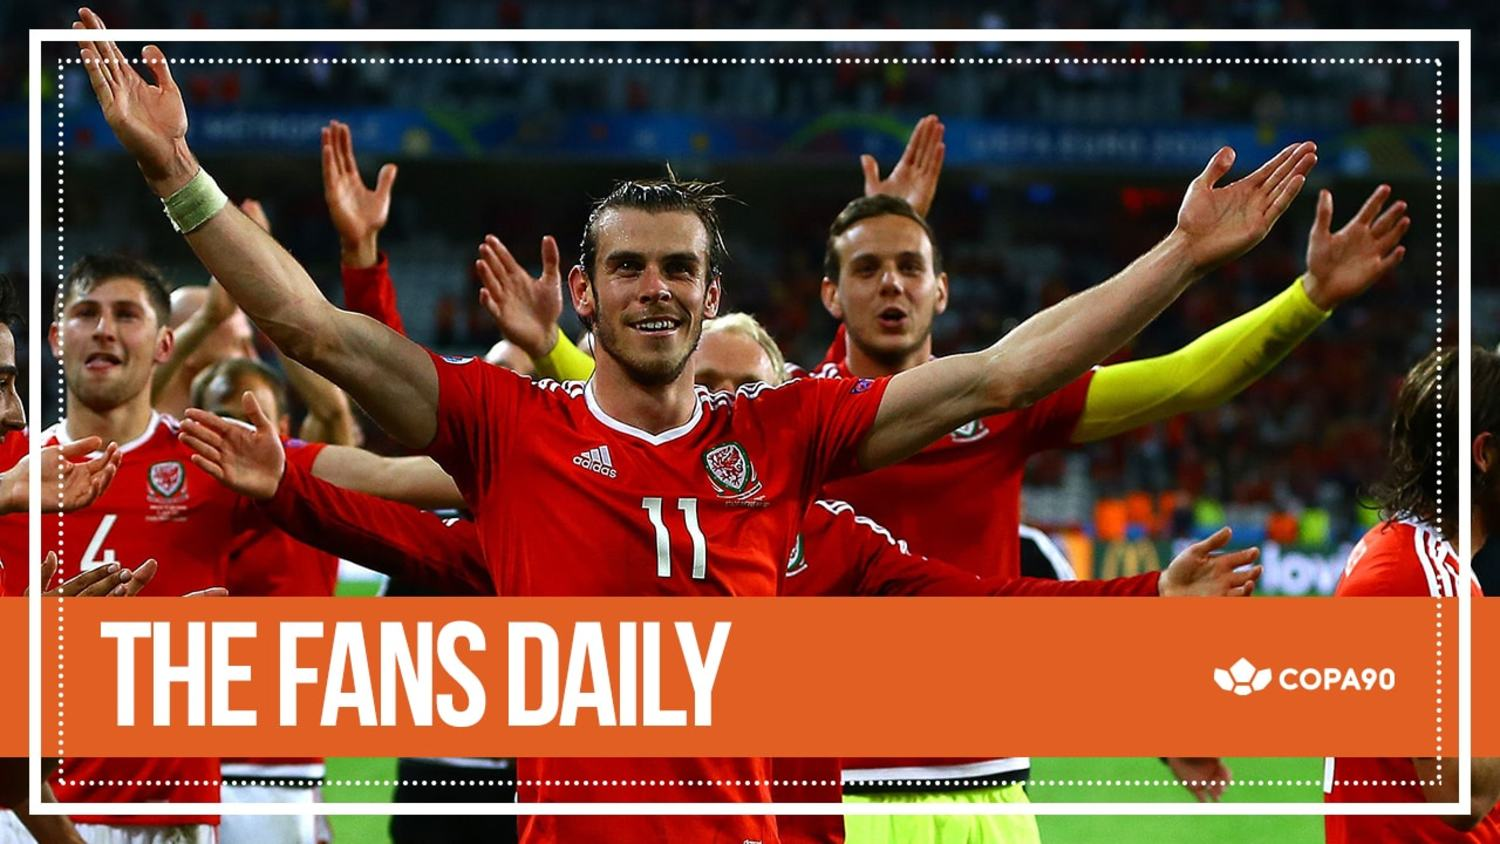 Can Wales Really Win Euro 2016? | The Fans Daily